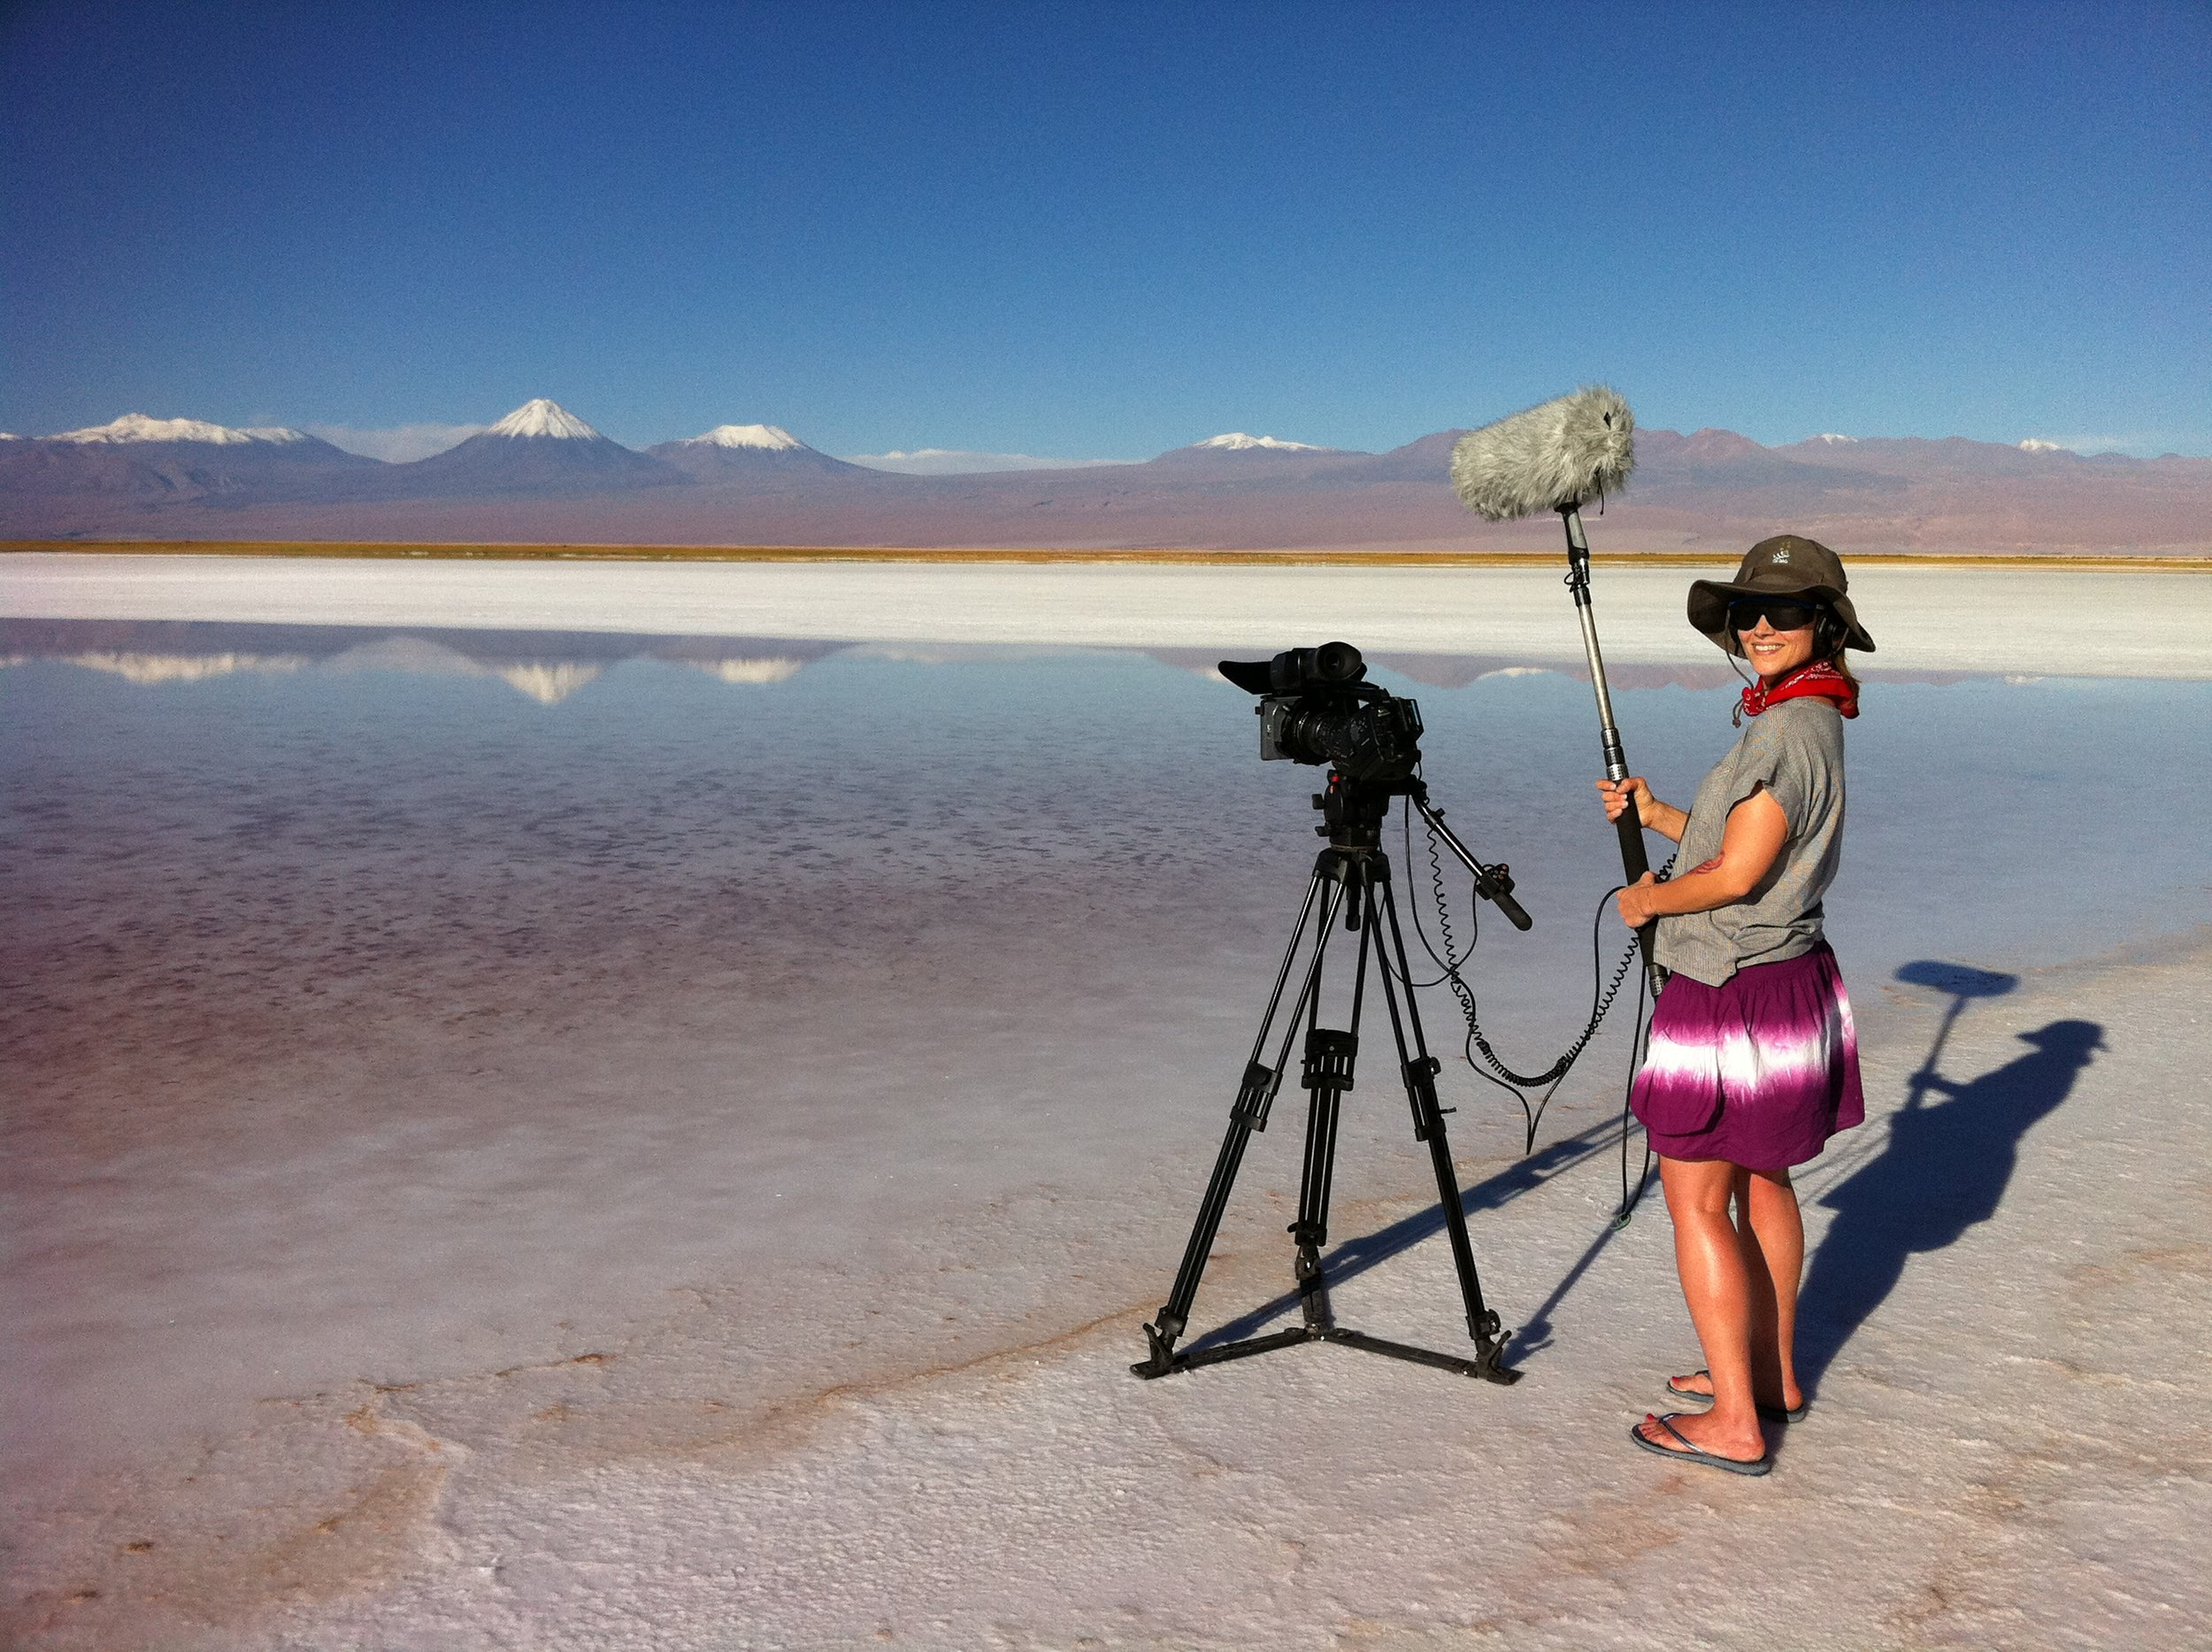 Jo enjoying the serenity of the Atacama, and it is hot at the bottom.